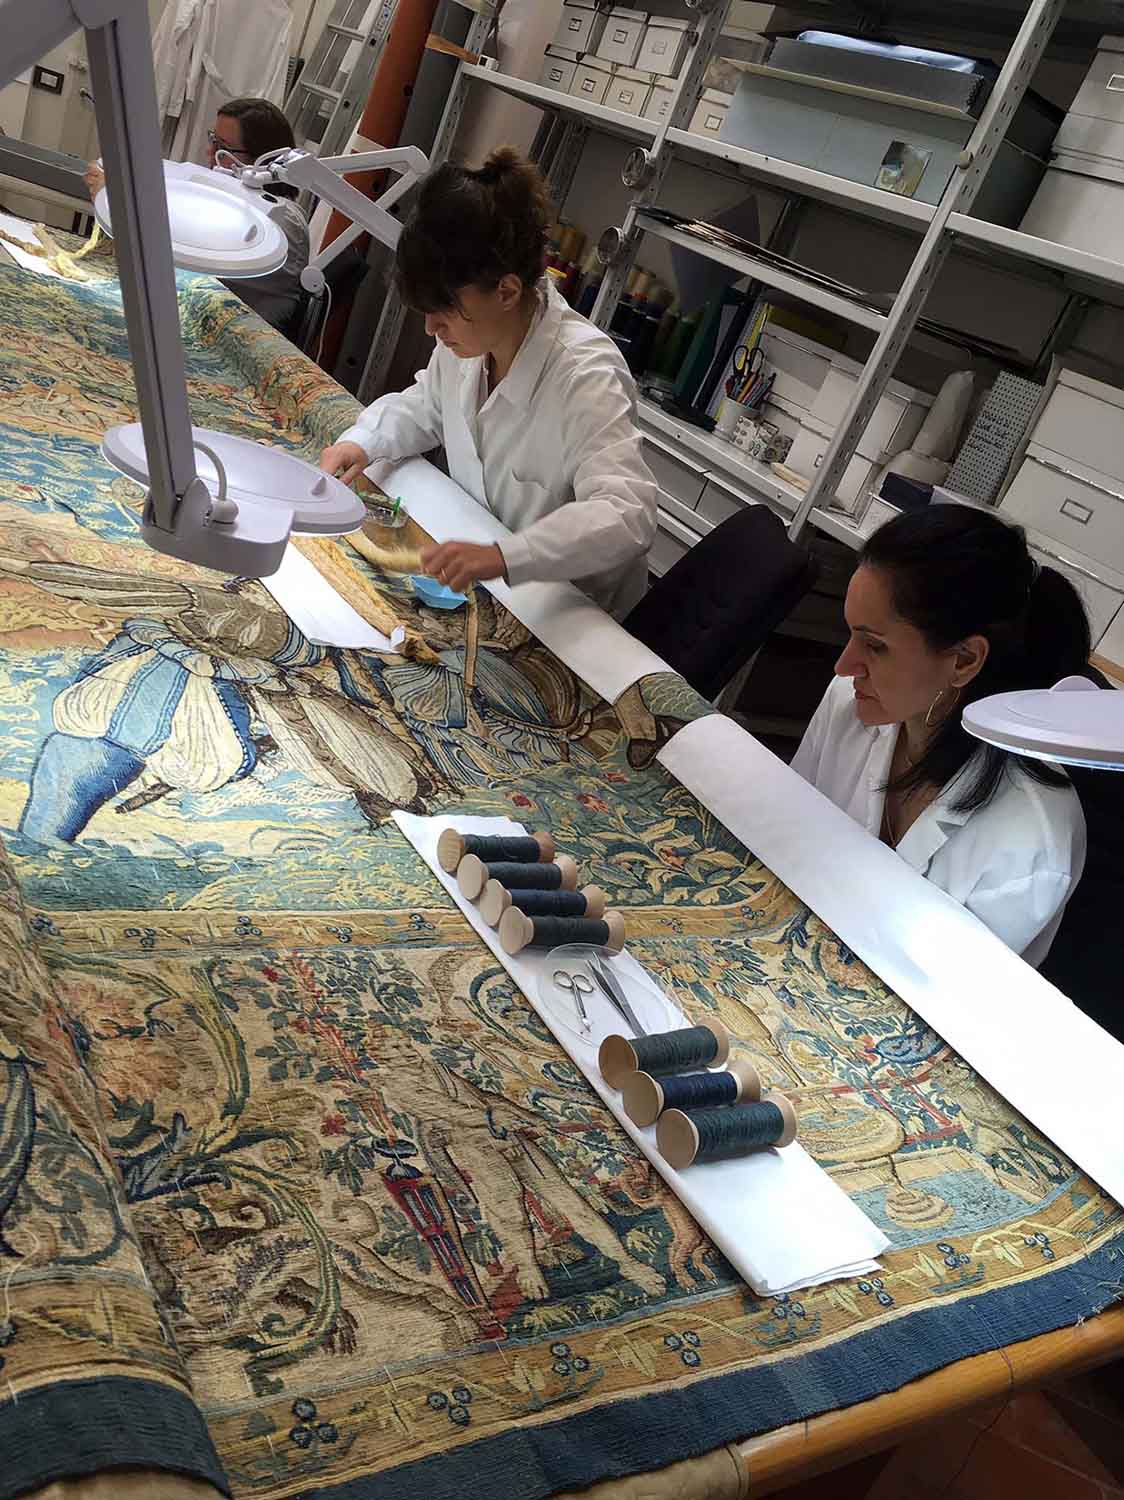 conservators working on a textile with large magnifying device